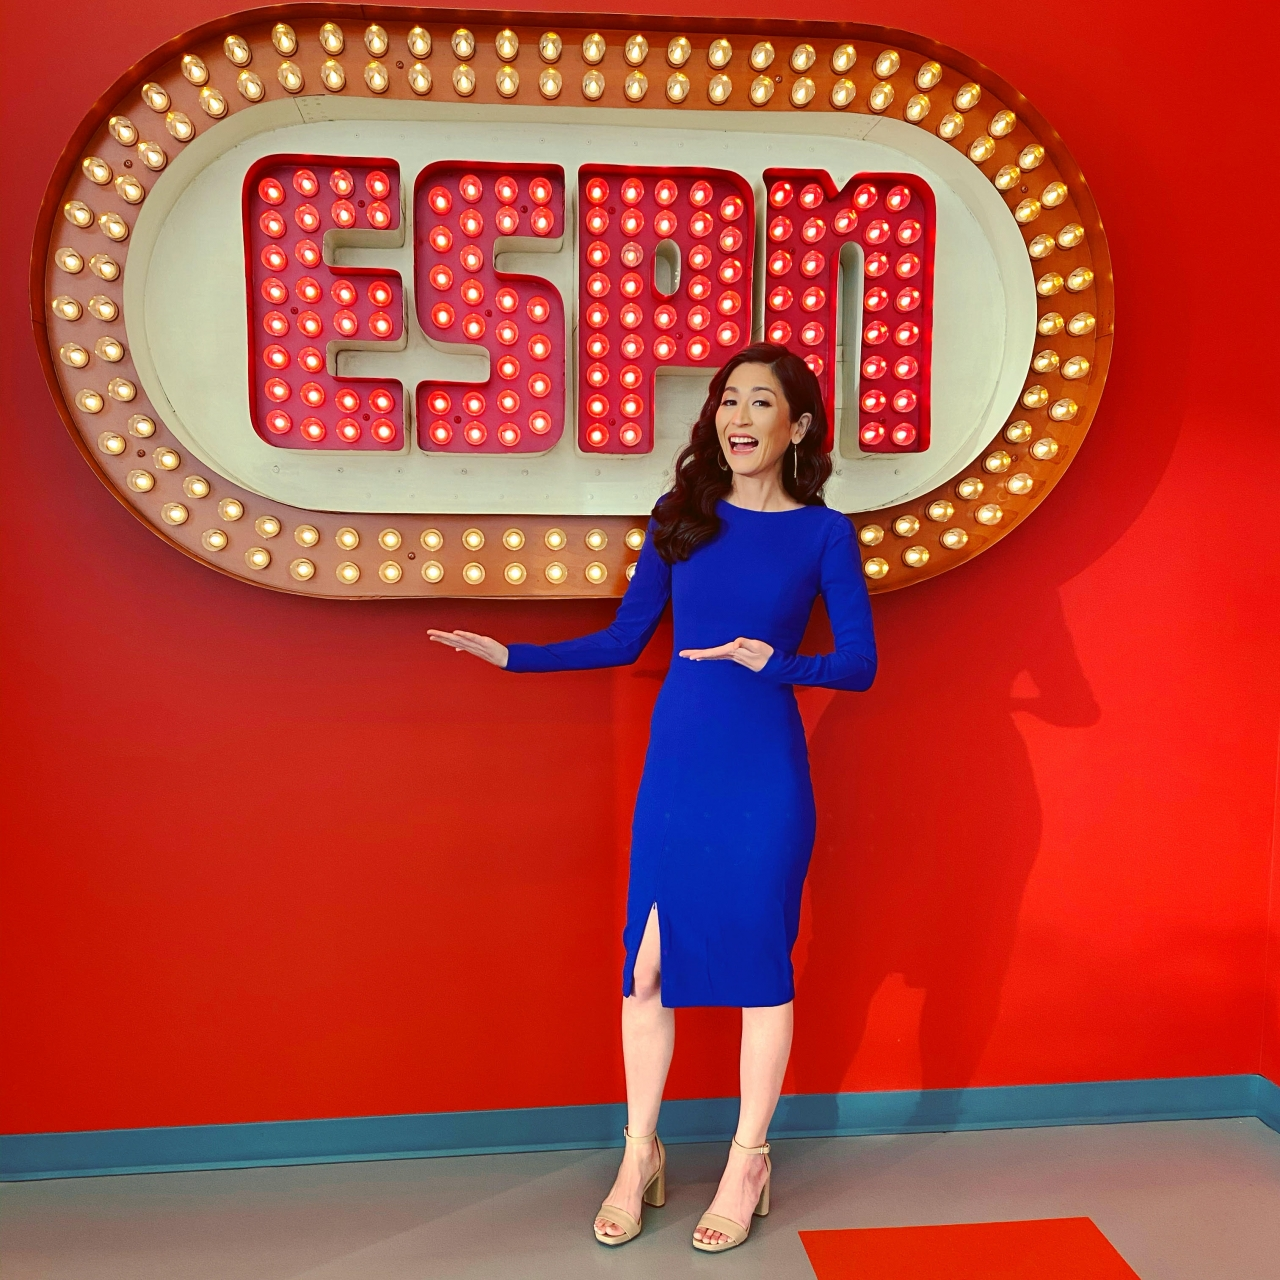 water4Her Sports Host and Broadcaster Ambassador Mina Kimes - ESPN contributor, award-winning journalist, NFL analyst, senior writer, podcast host and television contributor